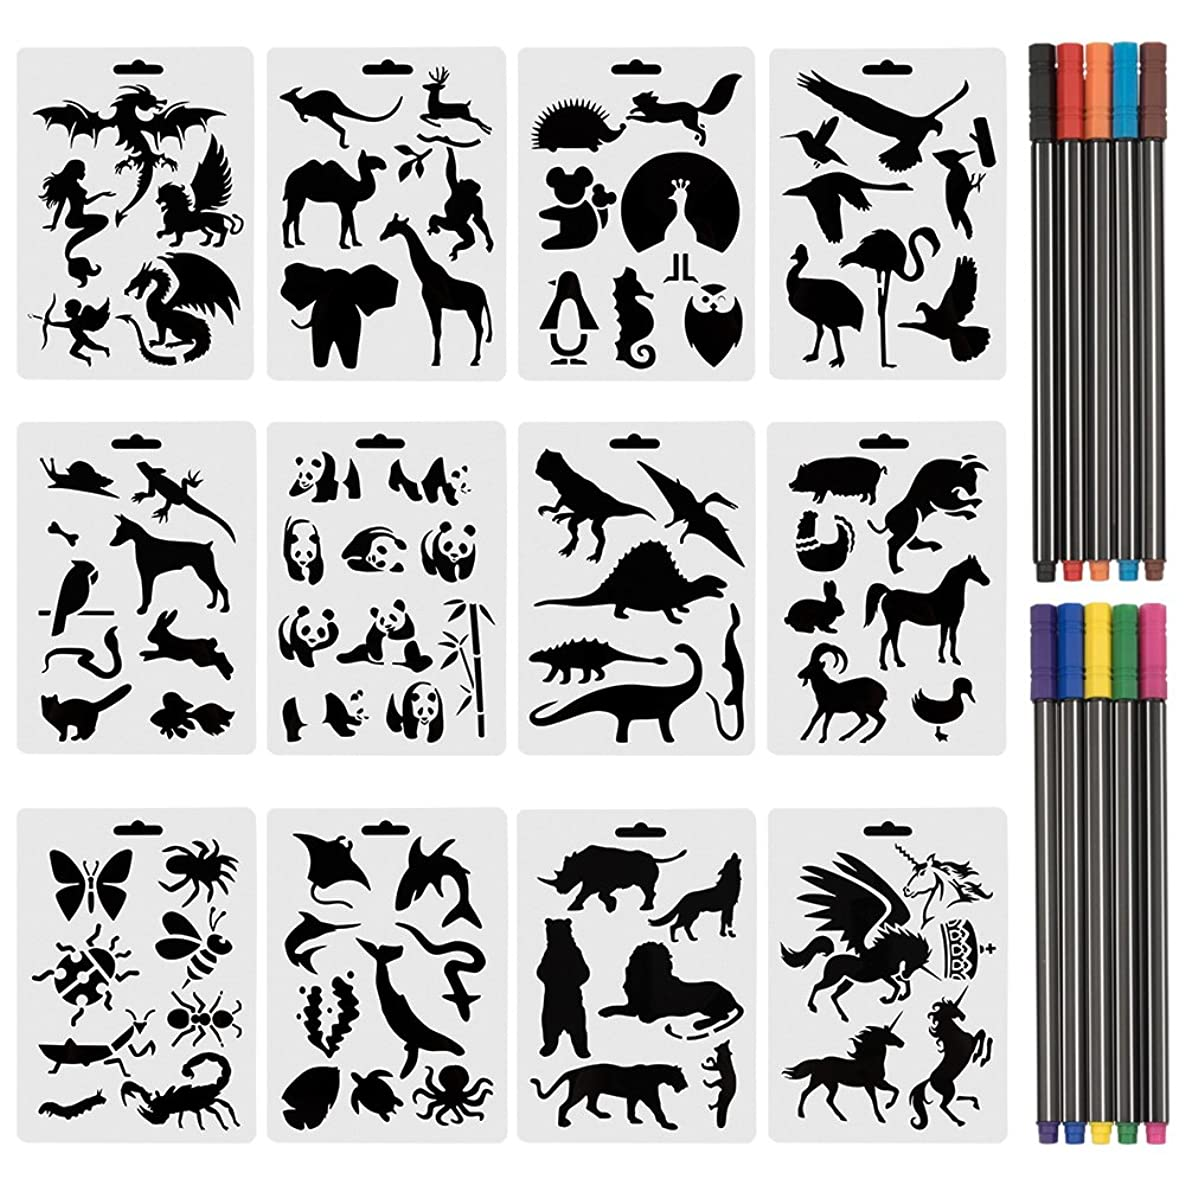 URlighting Drawing Animal Stencils Set(12 Pcs) Painting Templates with 10 Fineliner Color Pen for Children Creation, Animal Education, School Projects, Scrapbooking, Kids DIY Crafts